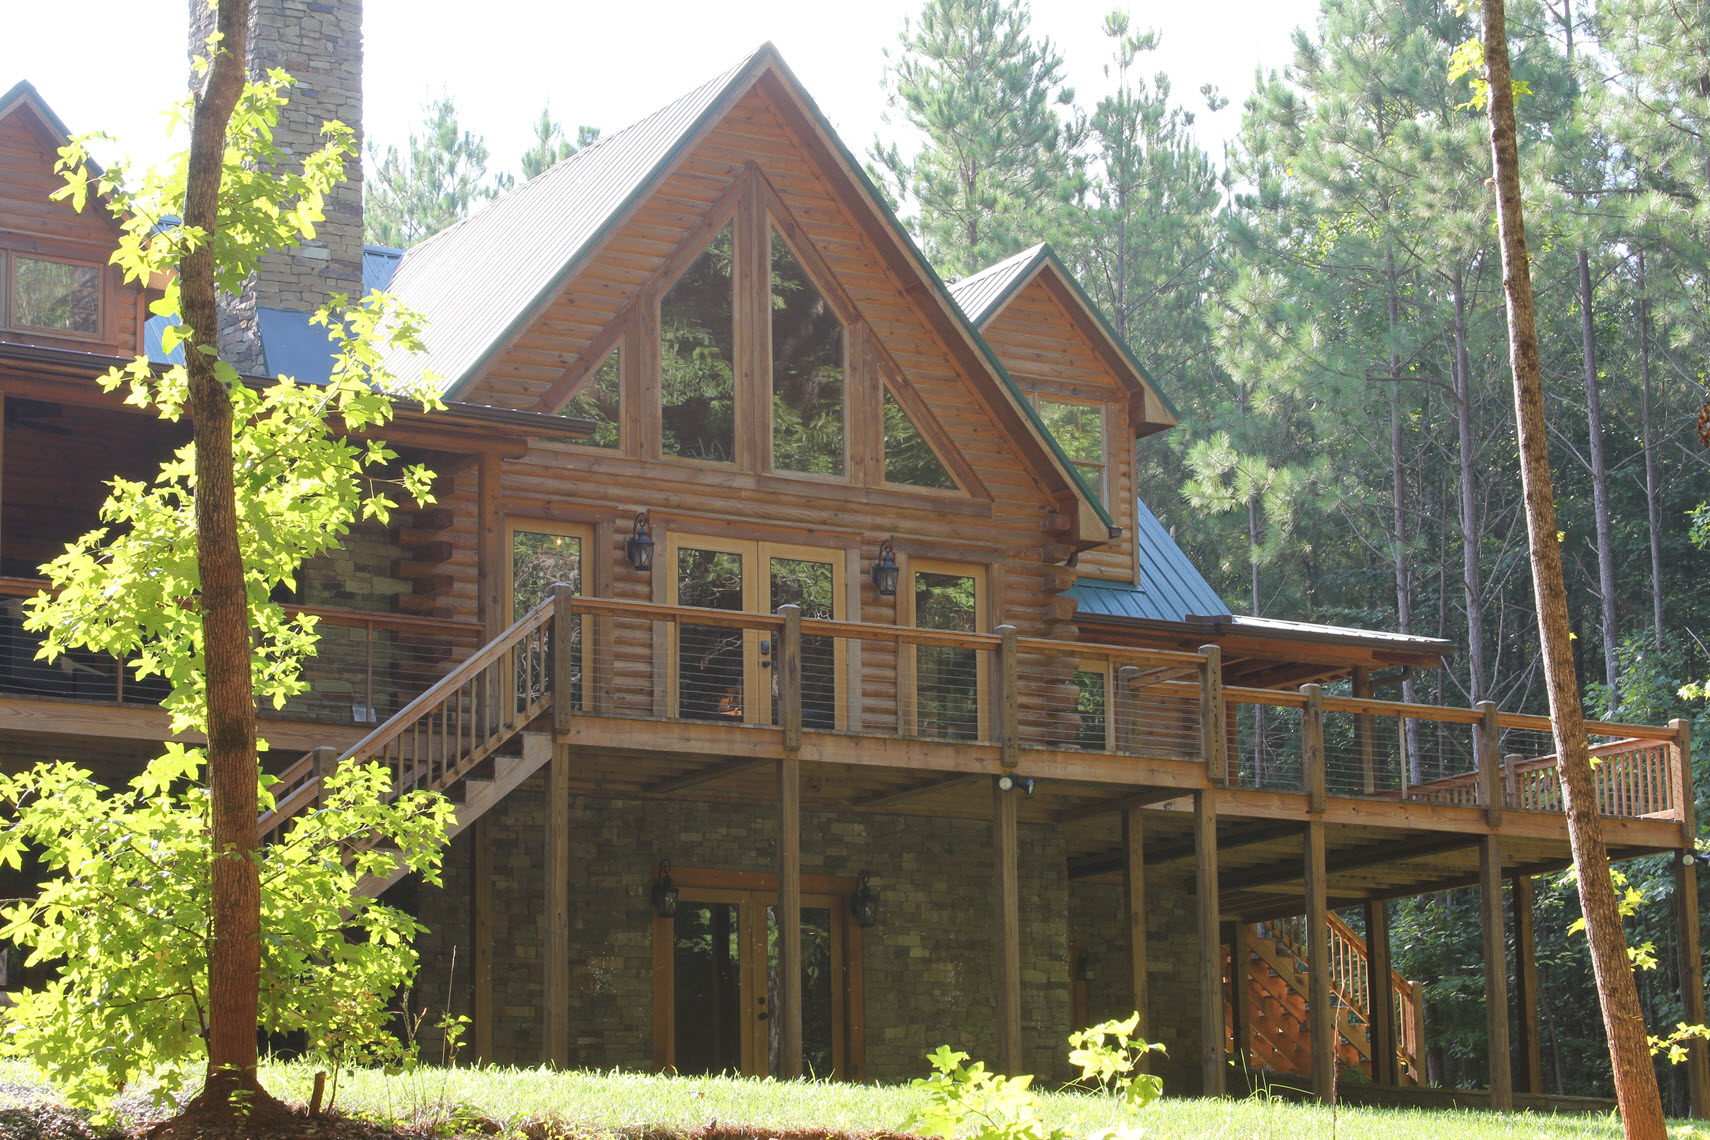 Old%20Oak%20Lodge%20049 Southland Log Homes House Plans on phoenix luxury homes, southland homes kitchens, southland custom homes, lake homes, southland homes layout, stone river rock homes, clearance on modular homes, kansas city homes,